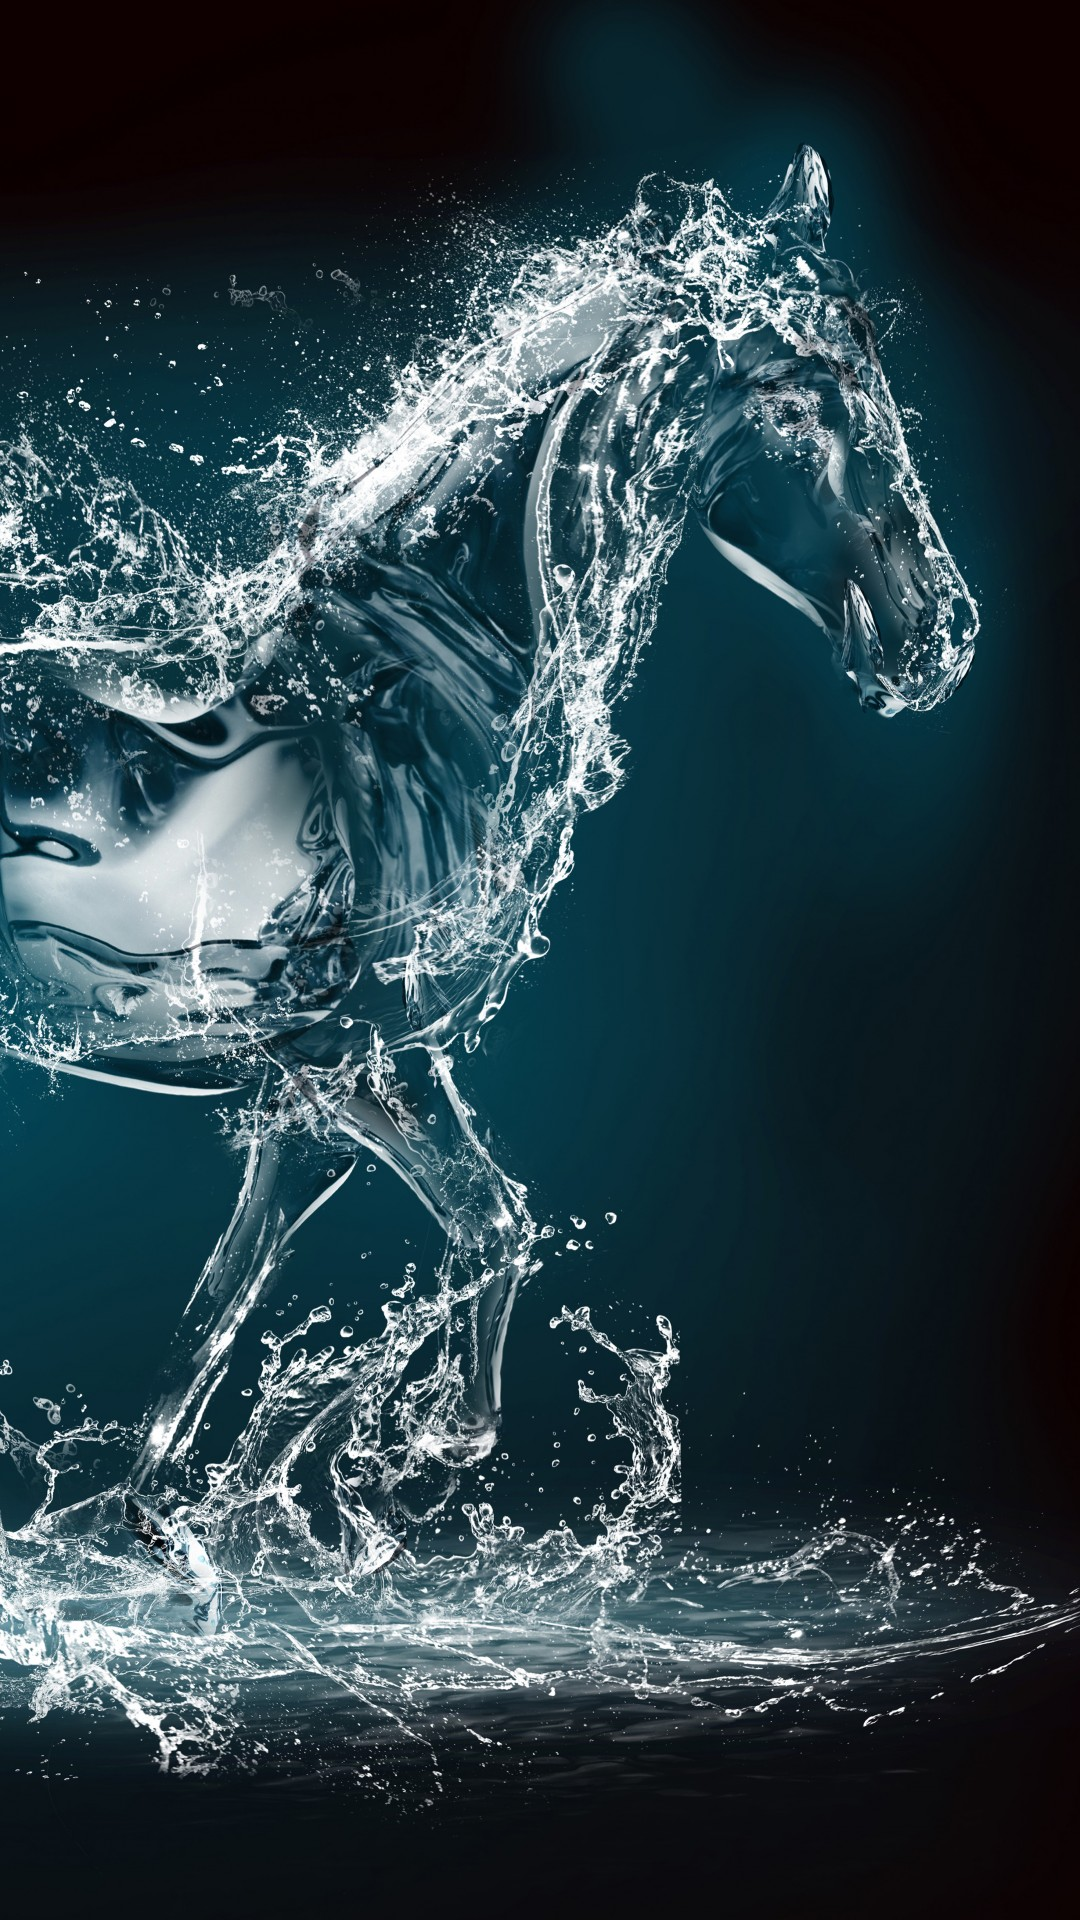 Wallpaper Horse Water Transparent 10k Art 18731